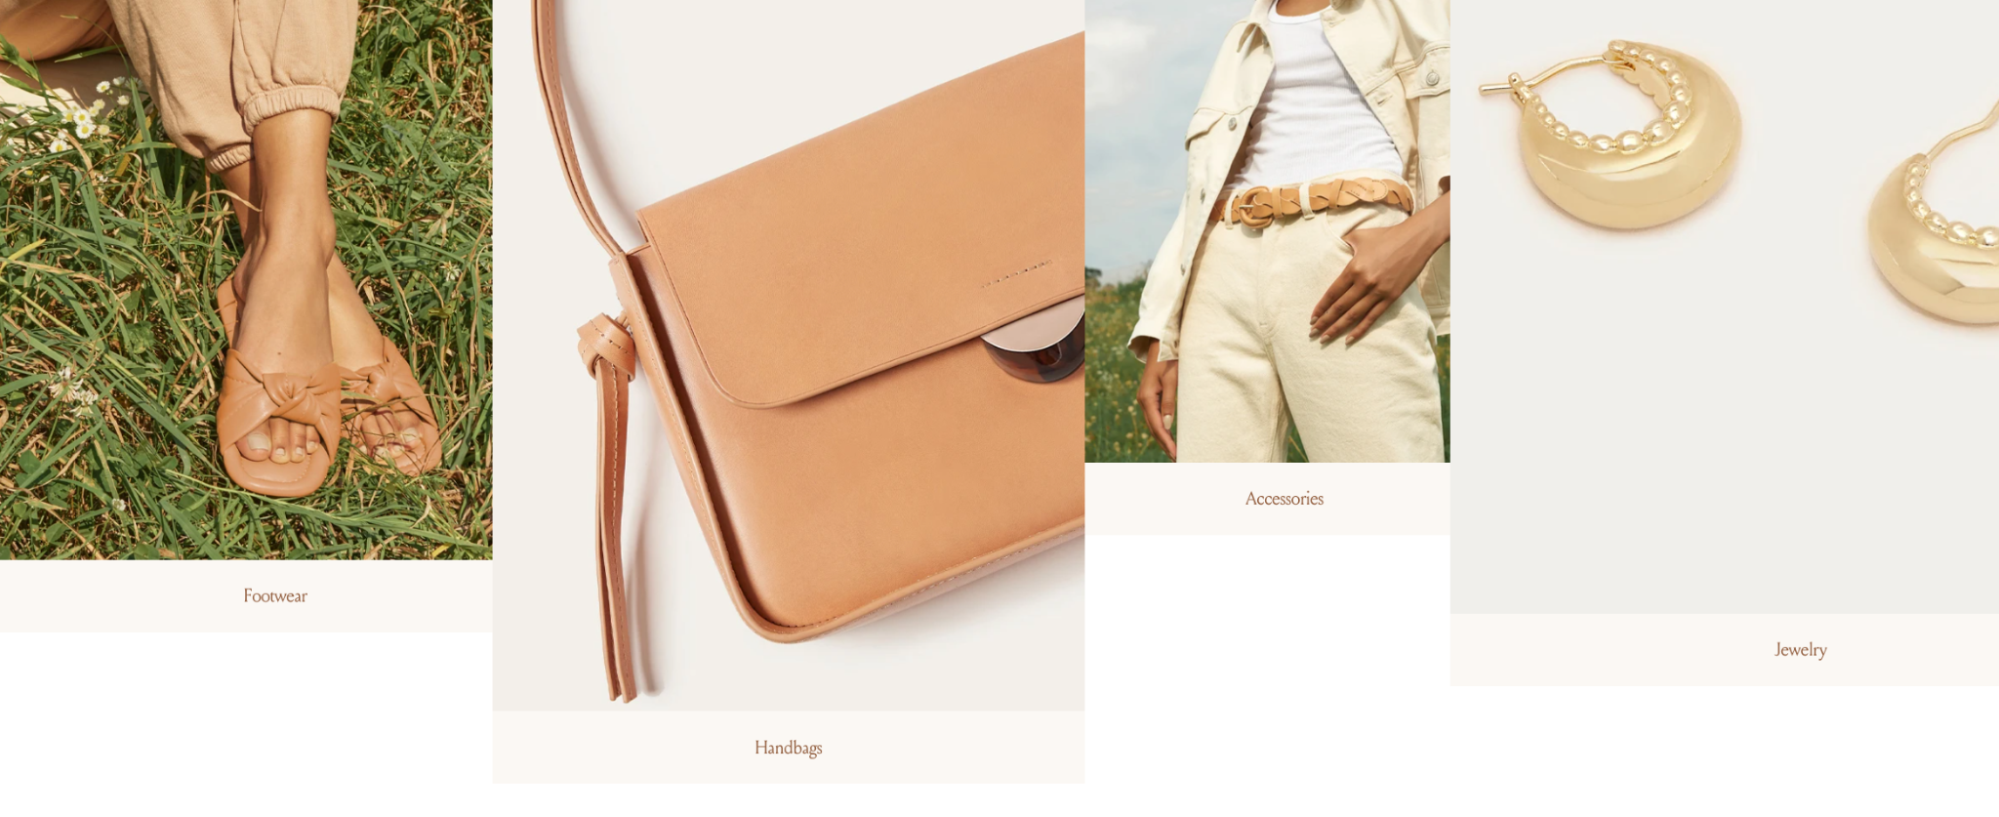 The difference modules we've created for Loeffler Randall's website